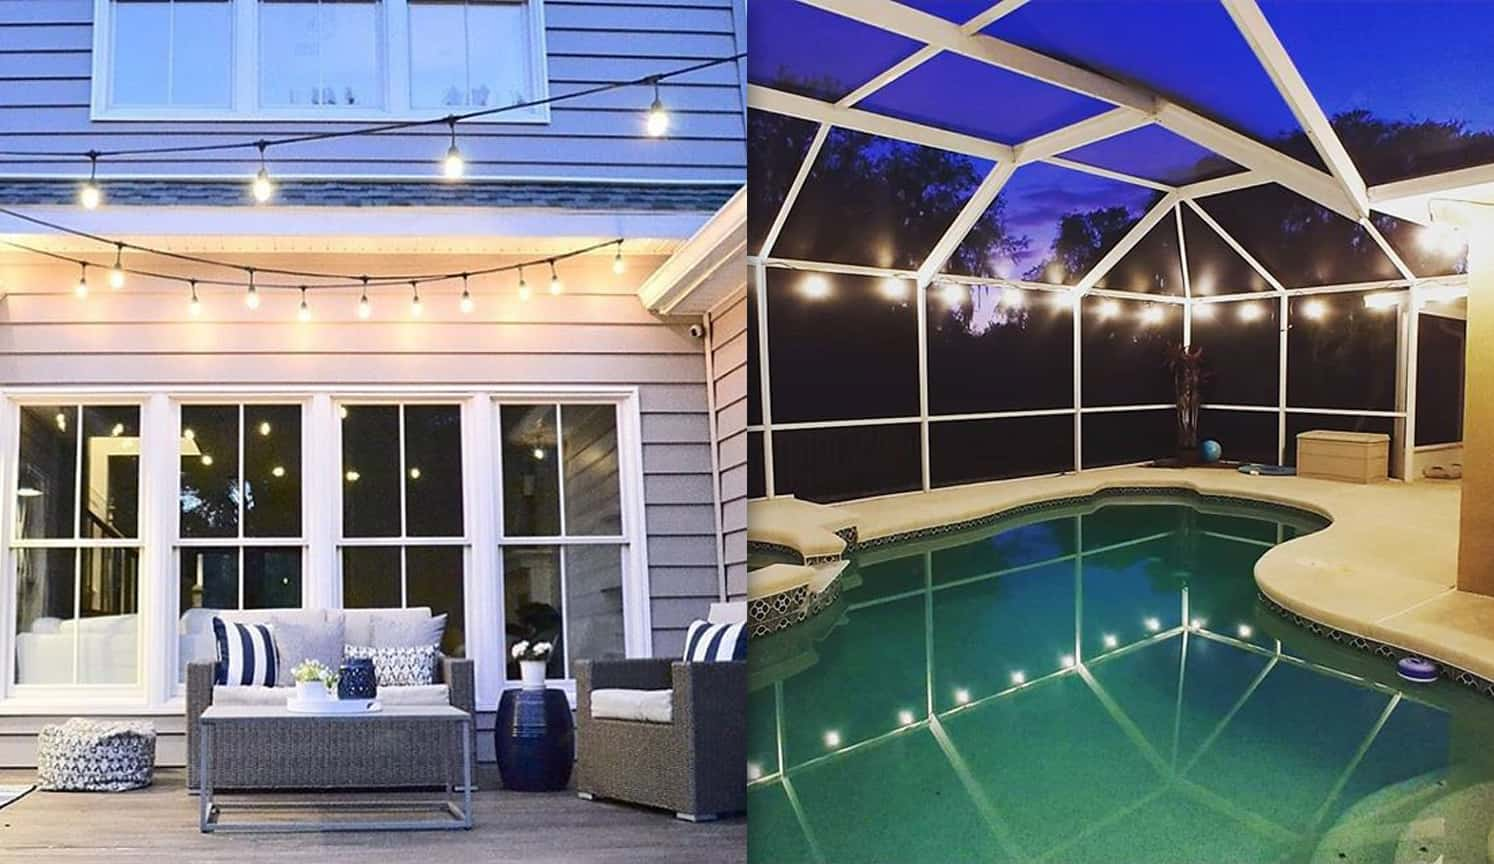 Outdoor Patio String Lights as the second related product of Outdoor Patio Lights